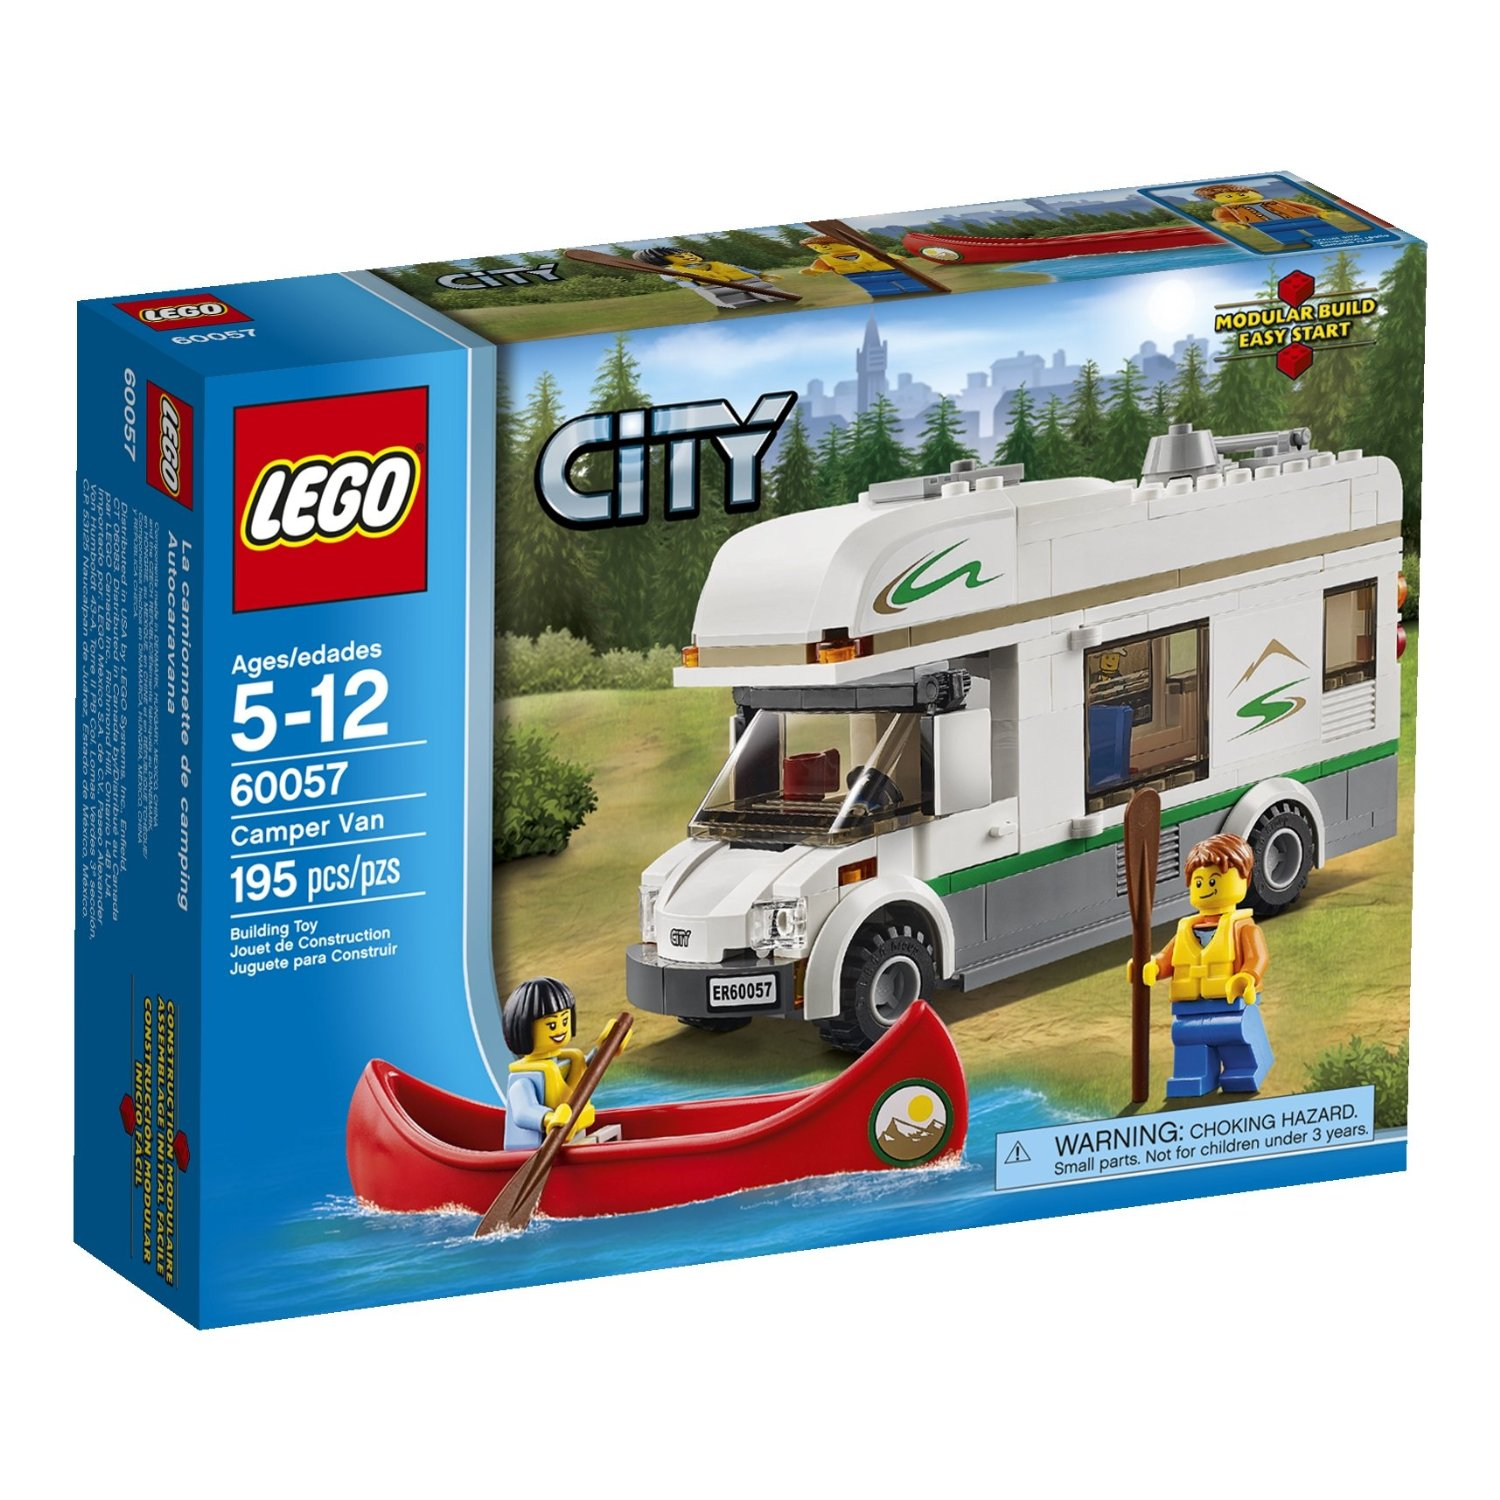 Lego Deals On Amazon July 9 2014 Frugal Fun For Boys And Girls